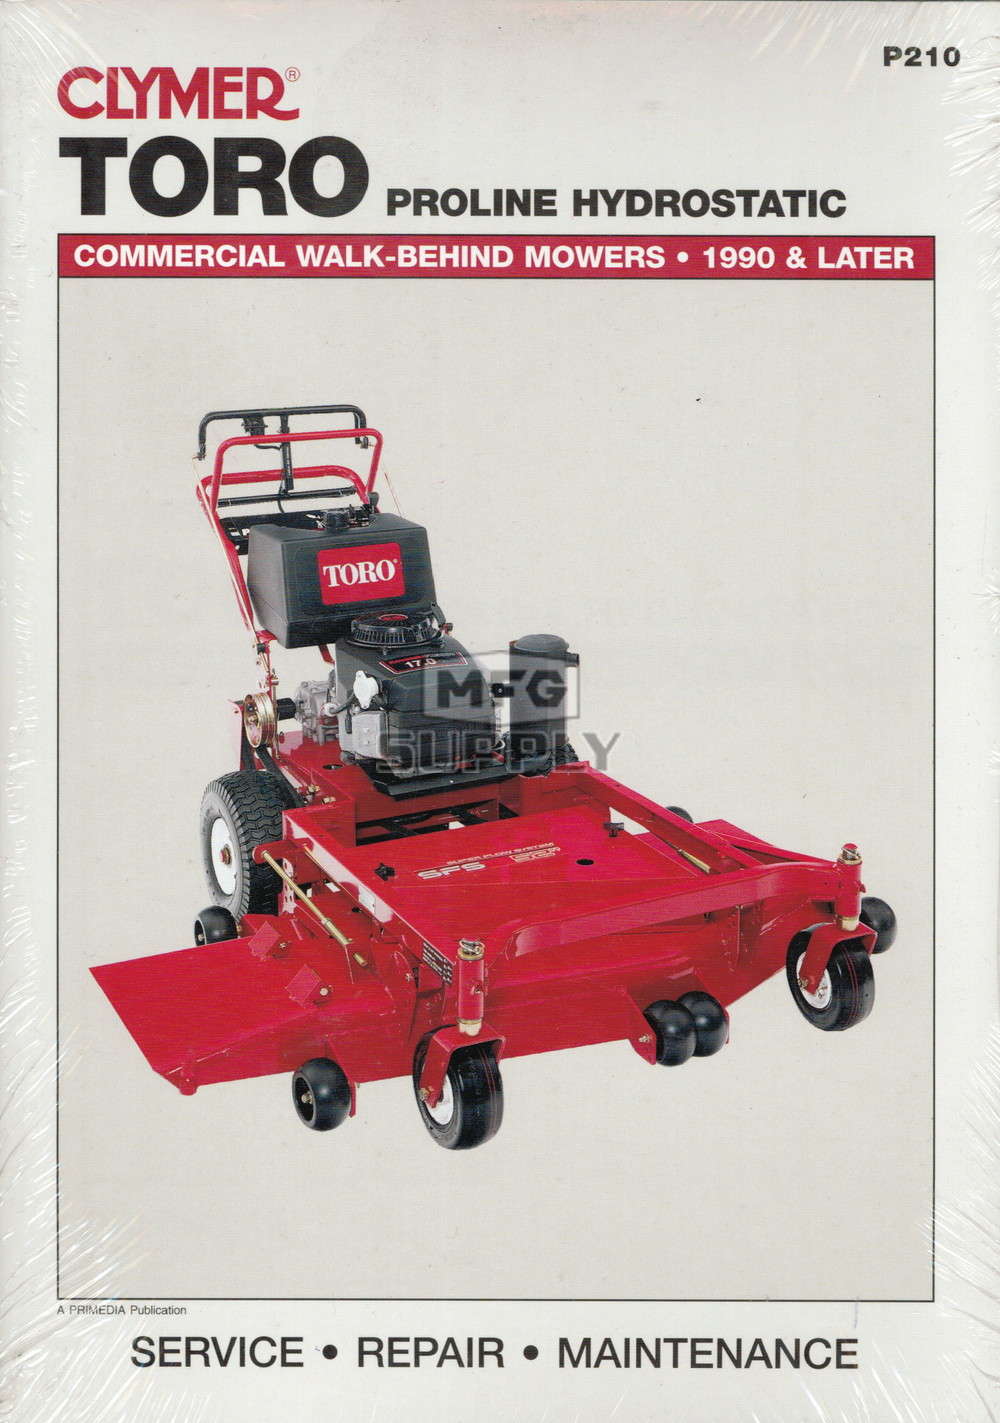 toro commercial walk behind mowers service manual 1990 later rh mfgsupply com toro lawn mower repair manual toro personal pace mower repair manual